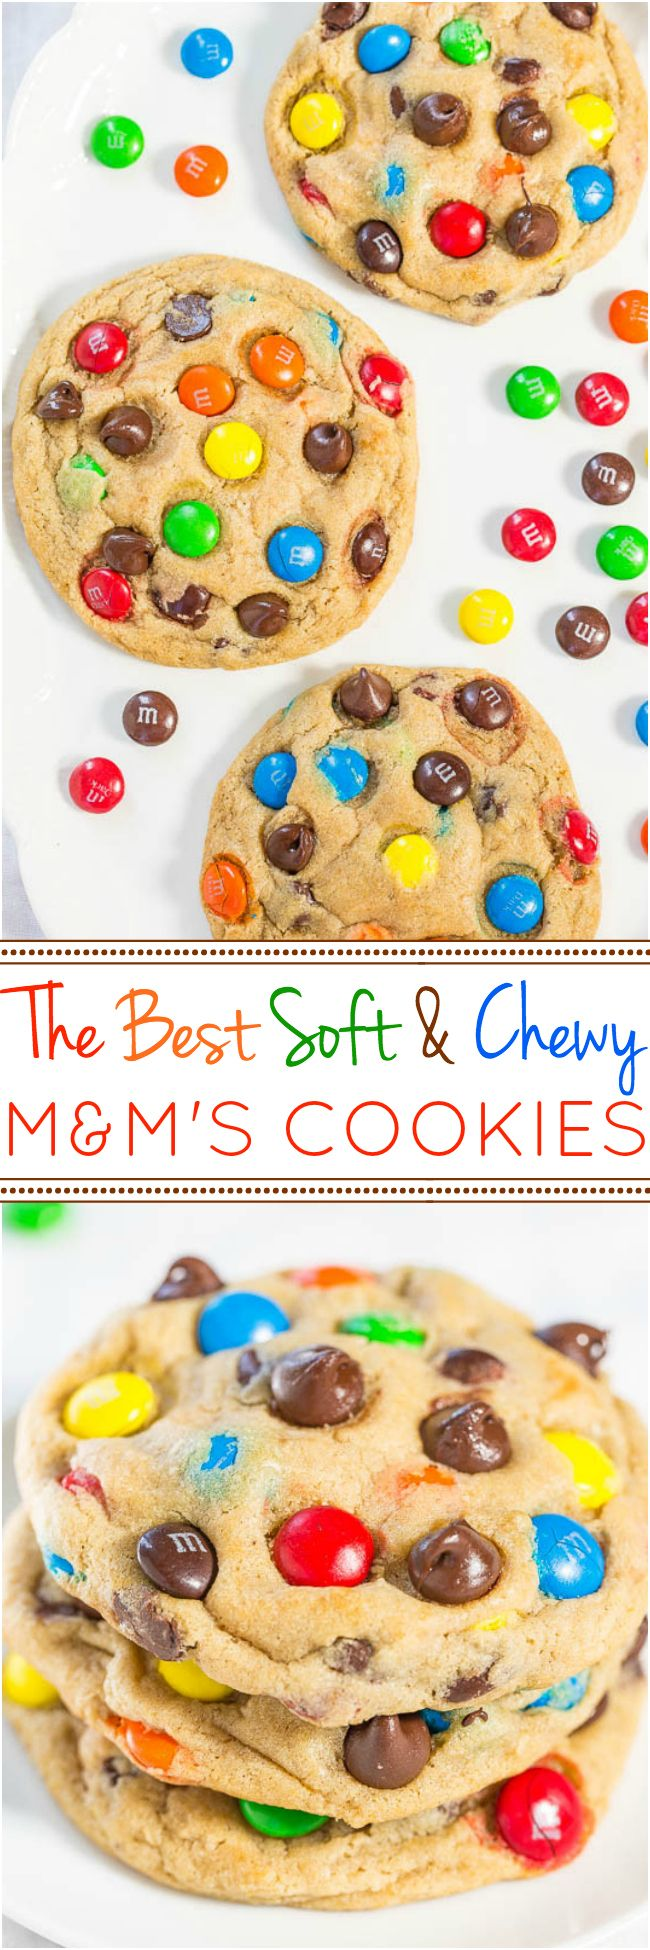 The Best Soft and Chewy M&M'S Cookies - Big, bakery-style cookies you can make at home that are BETTER than the bakeries!!